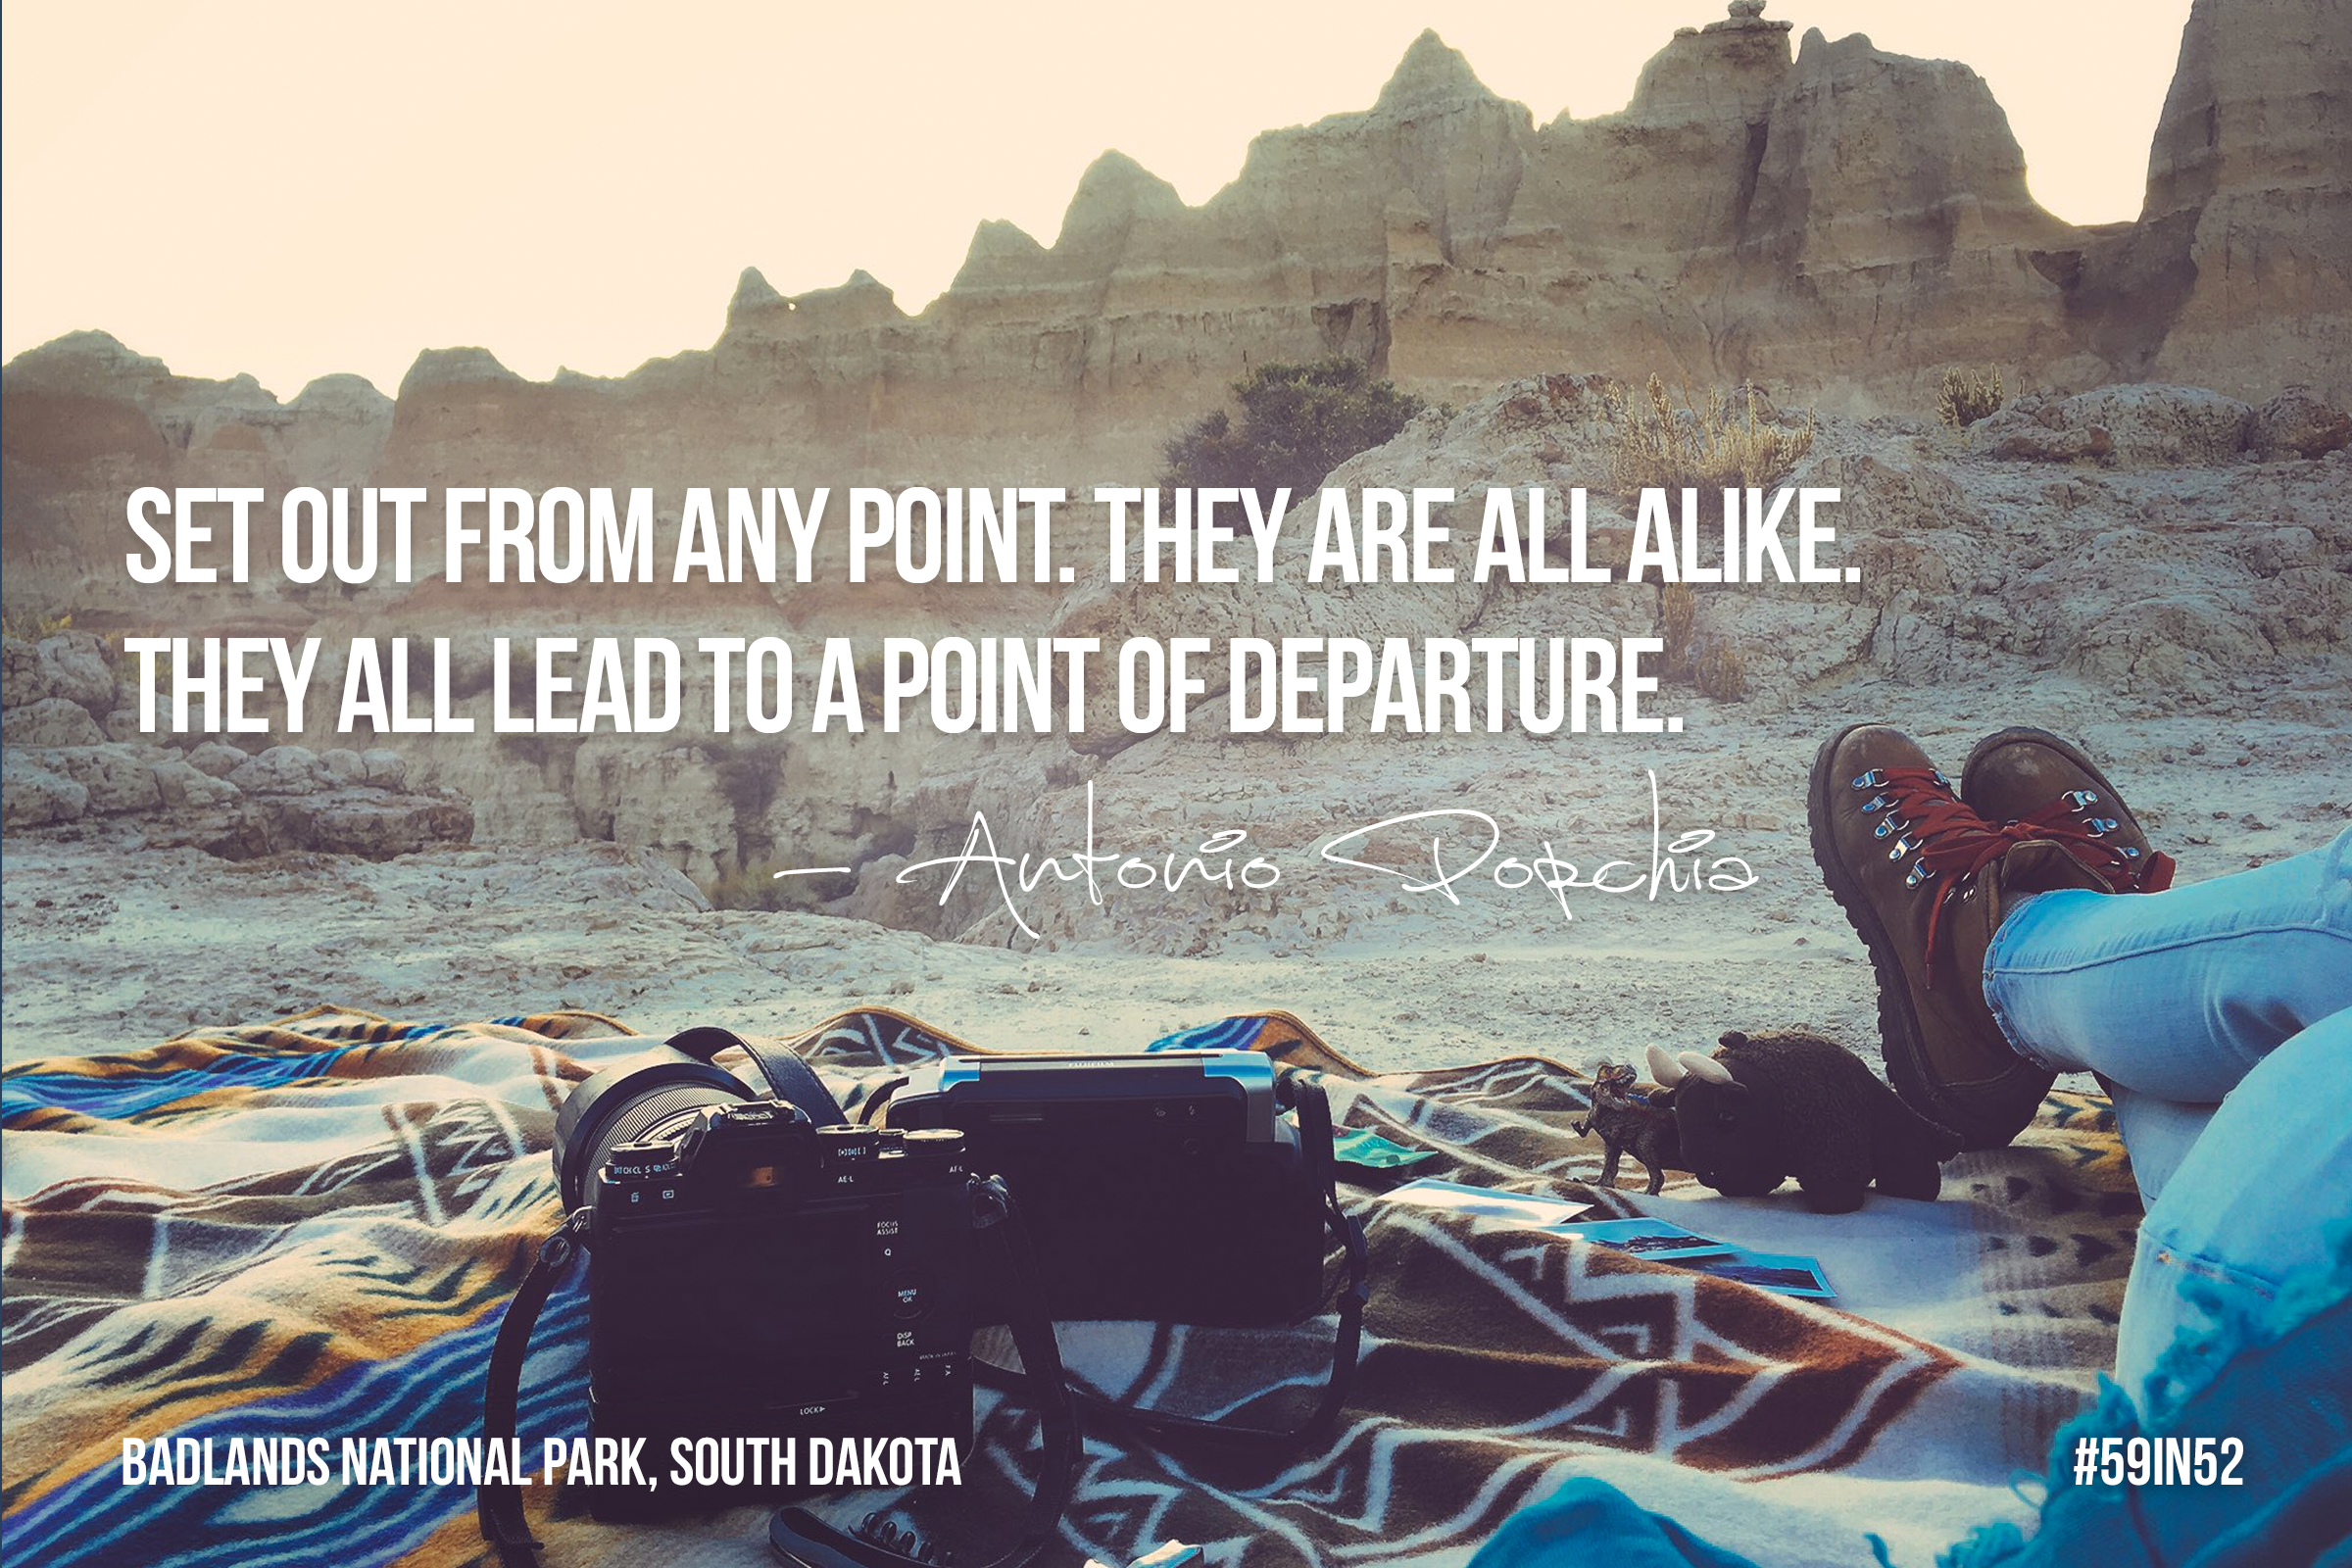 """Set out from any point, they are all alike. They all lead to a point of departure."" - Antonio Poschia"